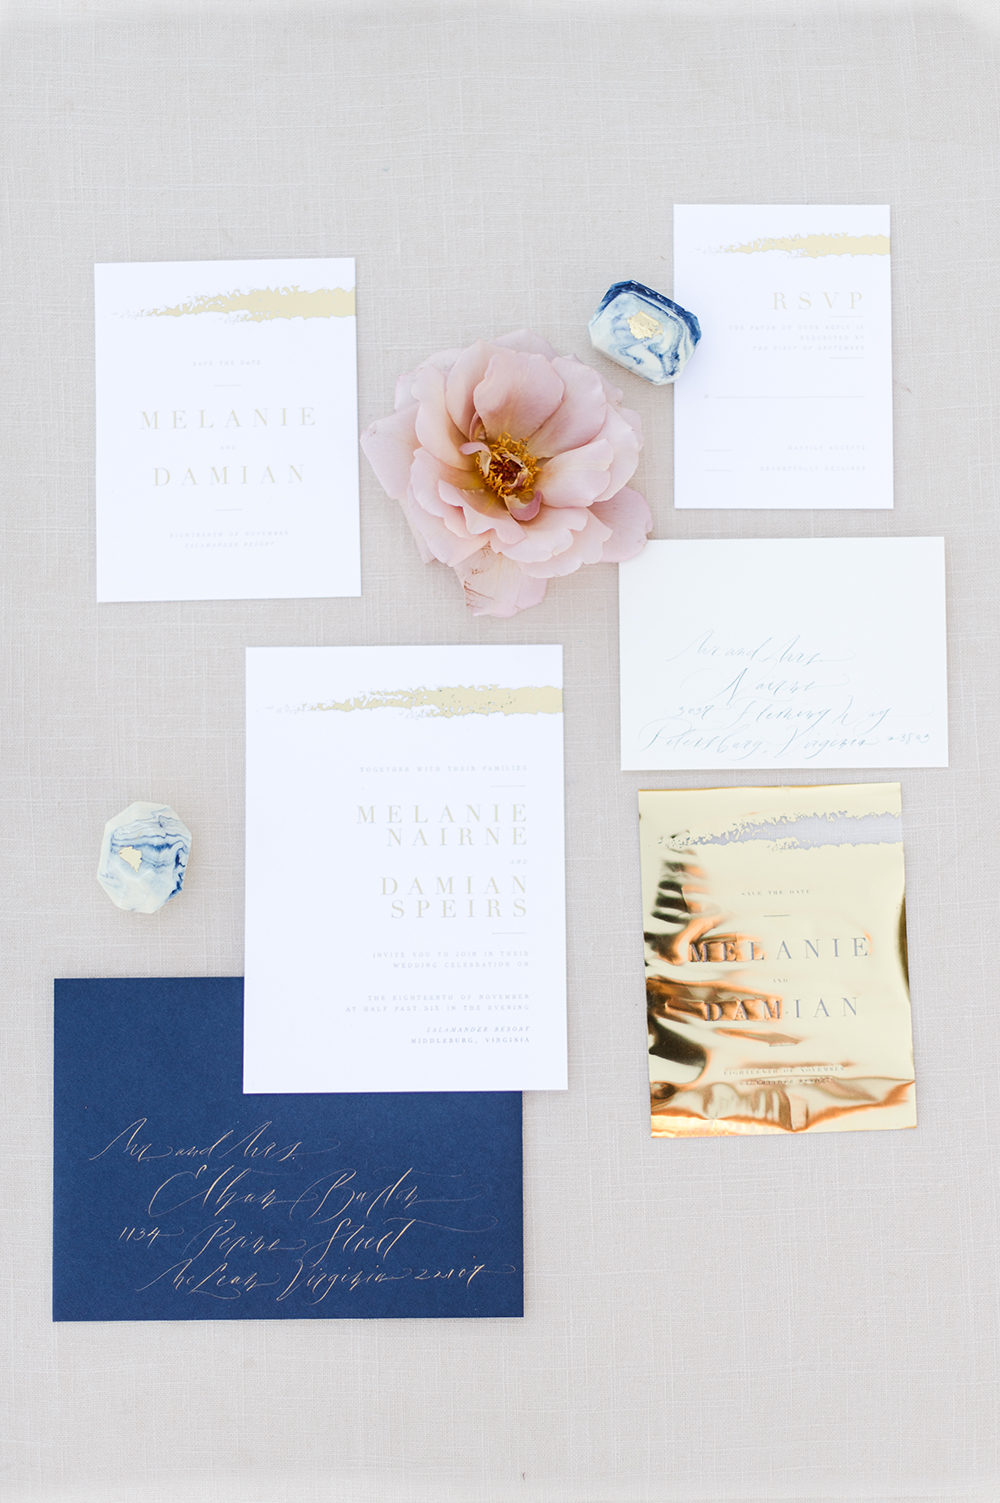 wedding stationery - photo by Jenny B Photos http://ruffledblog.com/ethereal-wedding-inspiration-with-vintage-accents